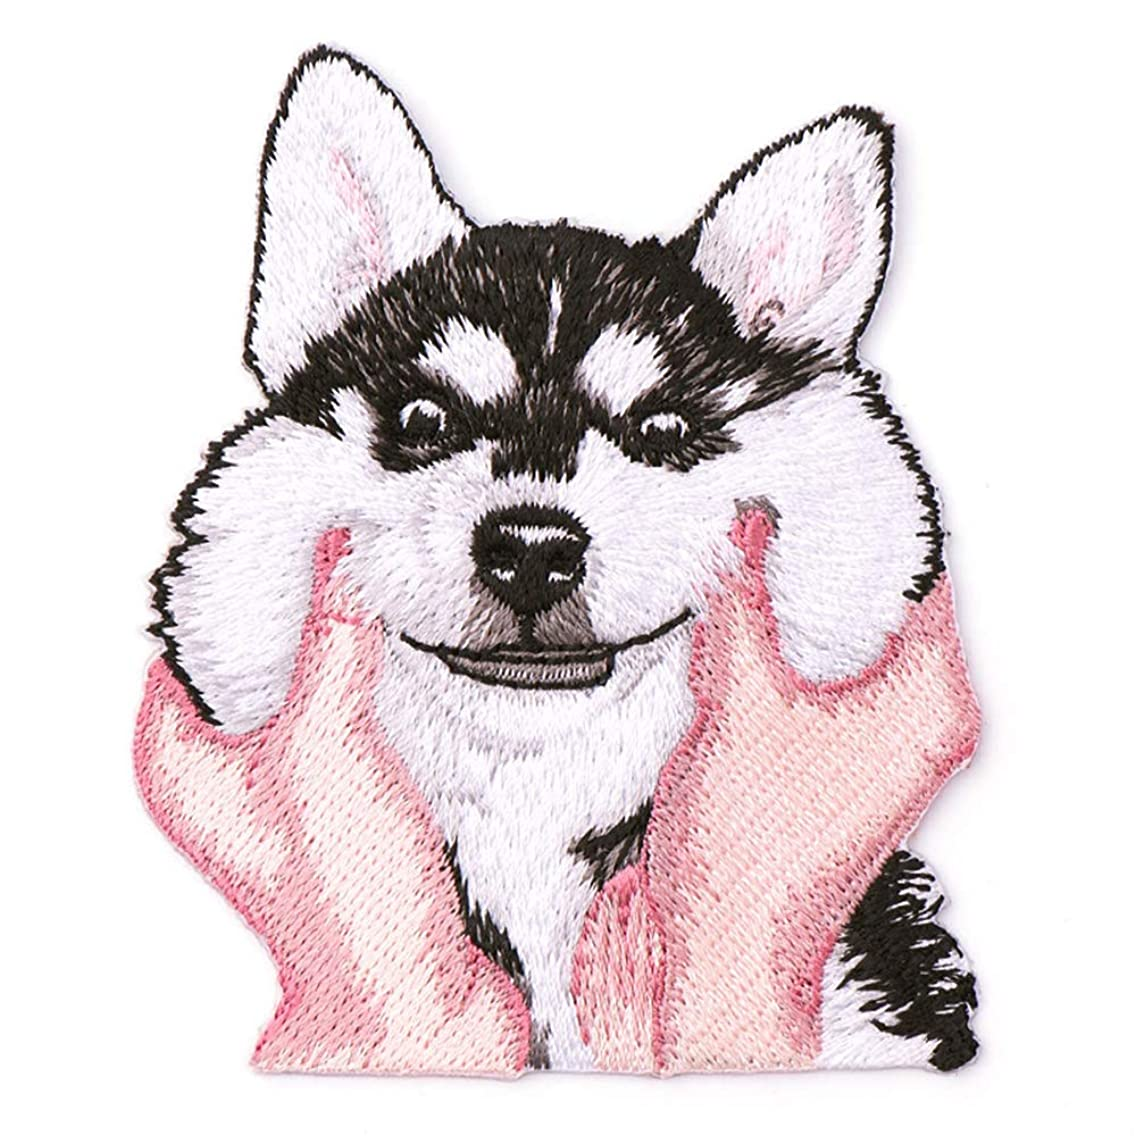 2 Pcs Cute Husky Delicate Embroidered Patches, Cute Embroidery Patches, Iron On Patches, Sew On Applique Patch,Cool Patches for Men, Women, Girls, Kids